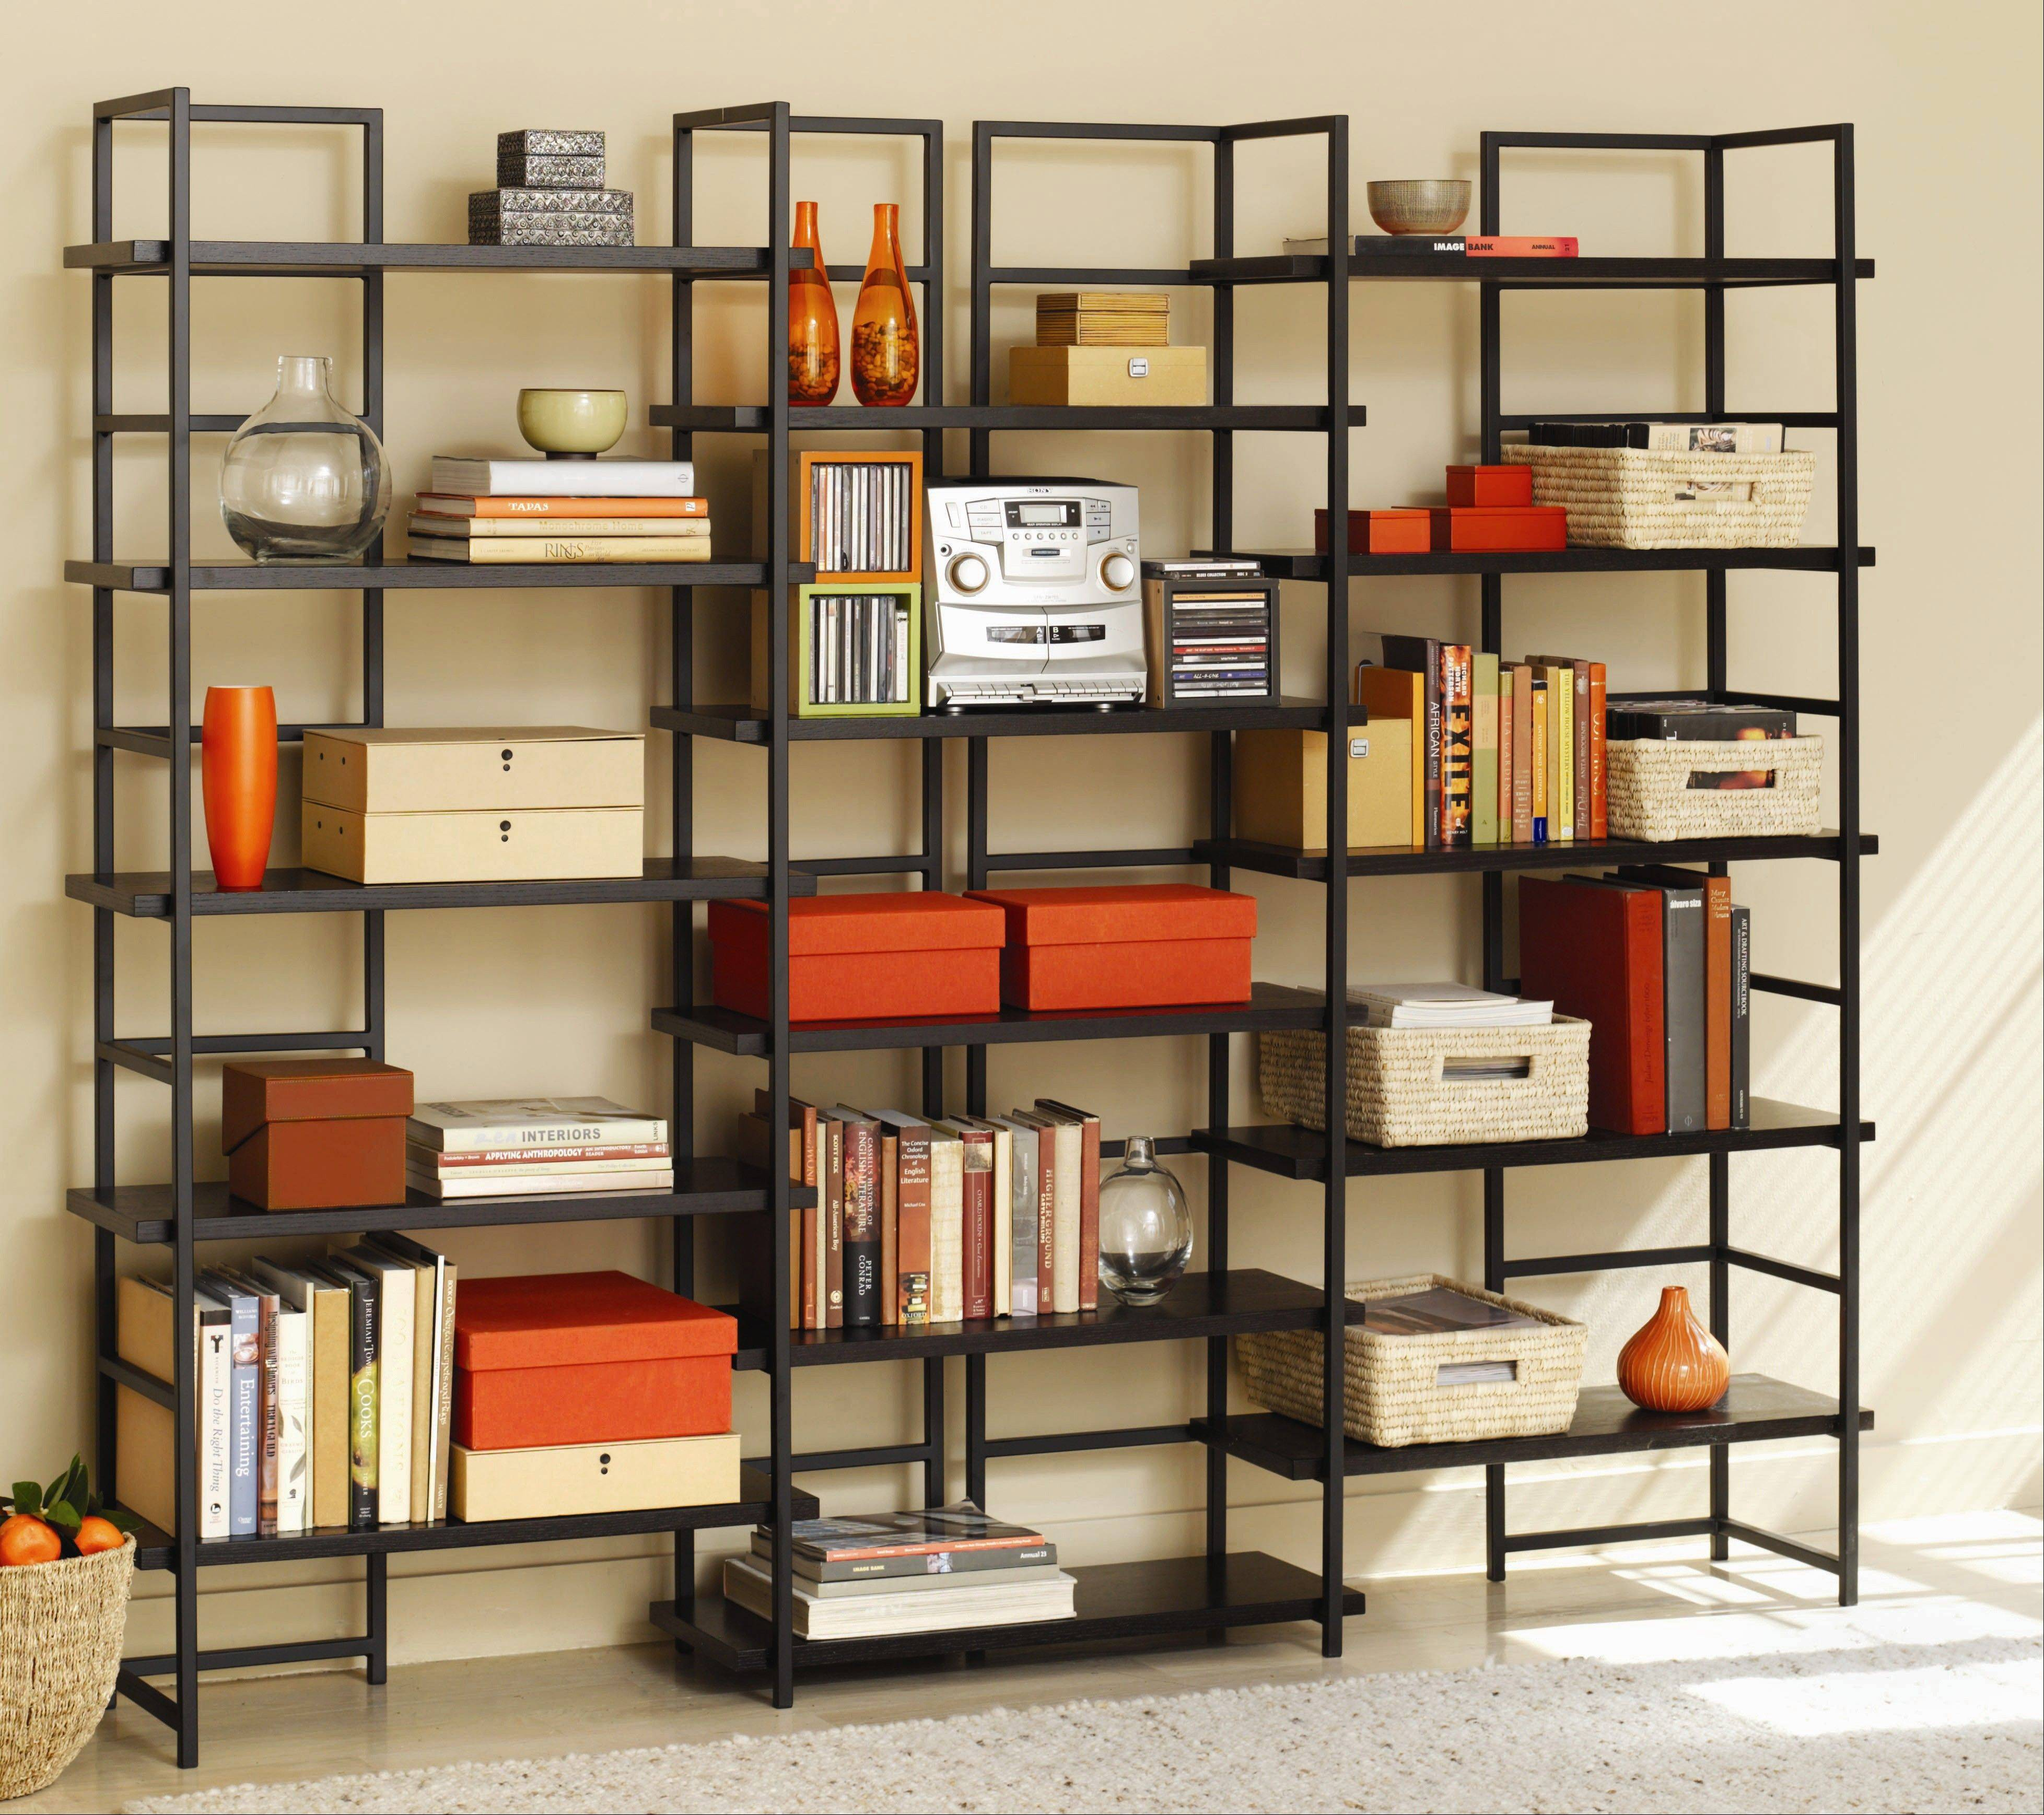 An open-backed modern bookcase can be used to ide rooms or set the perimeter